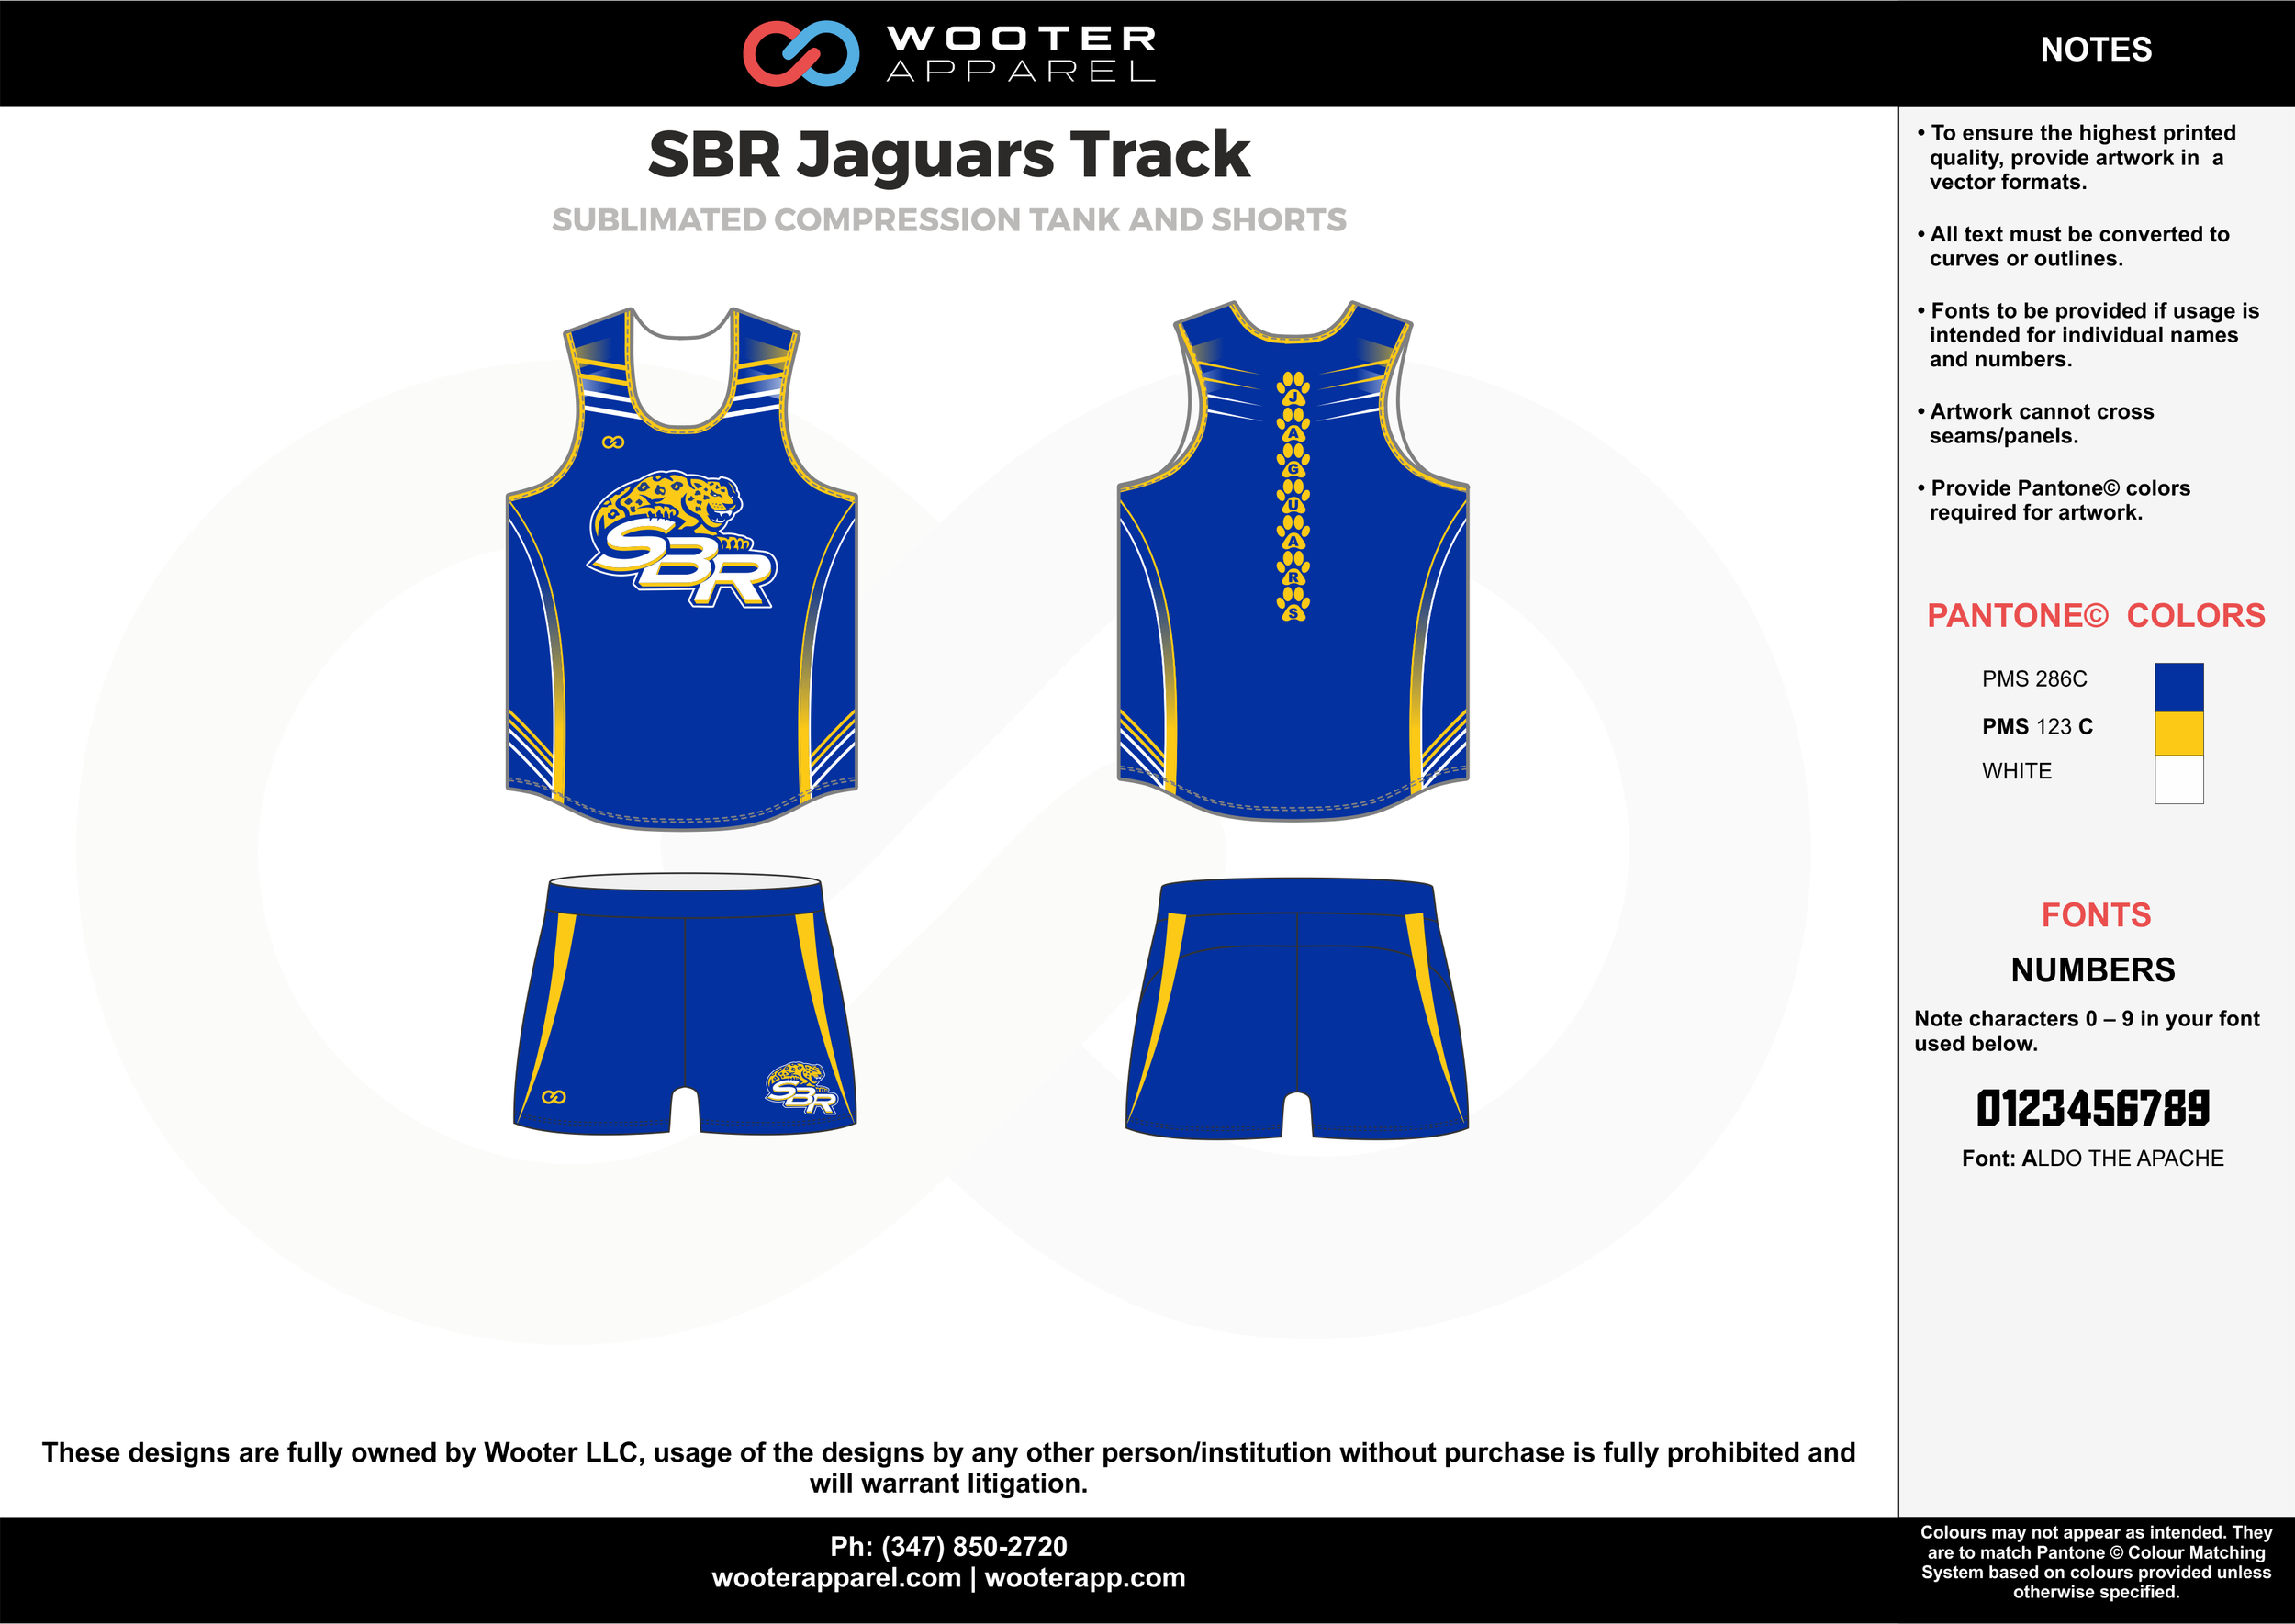 SBR Jaguars Track Blue White and Yellow Sublimated Compression Track uniforms tank and shorts